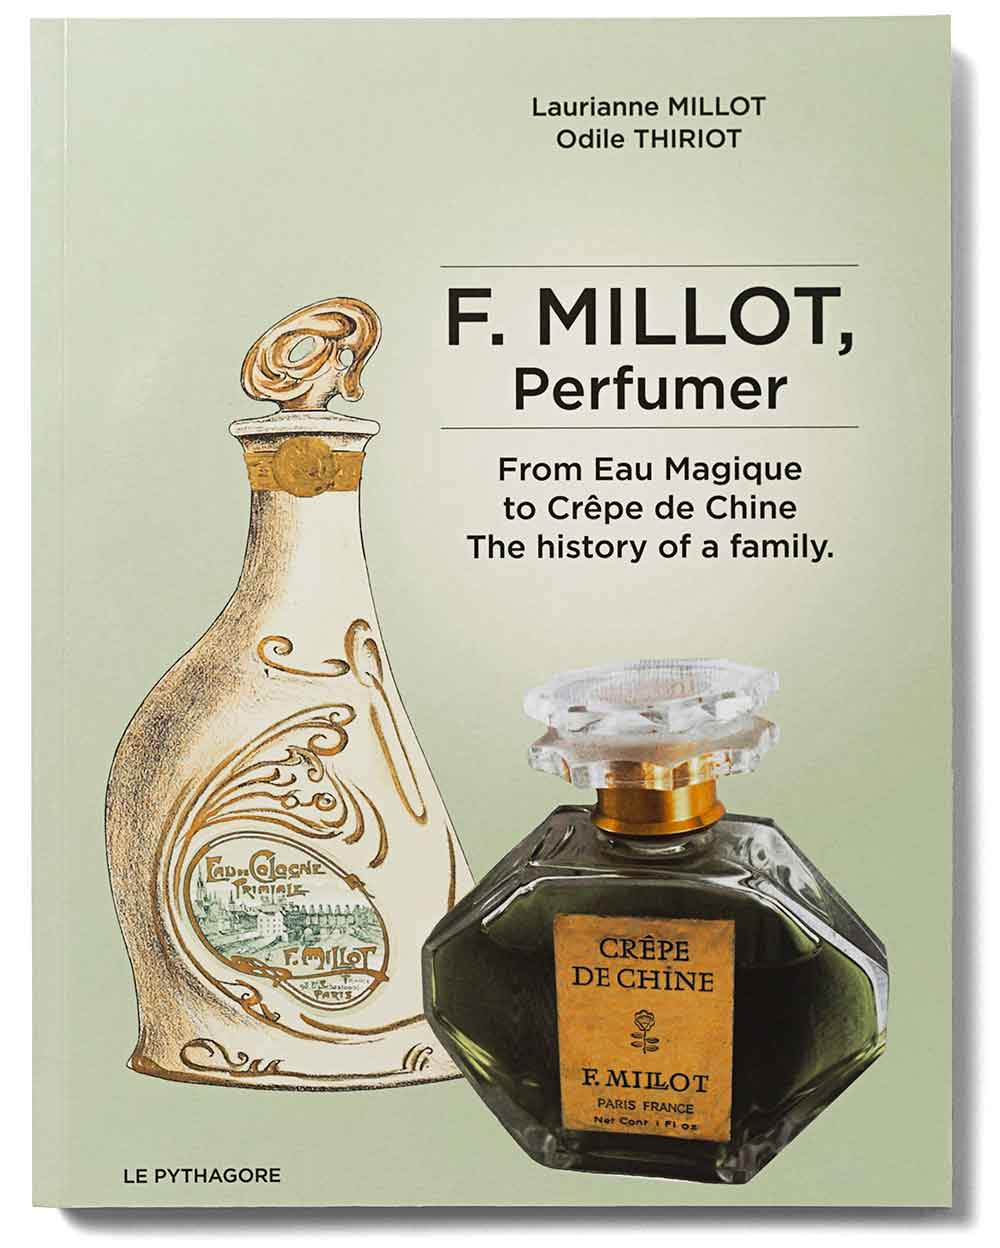 F. Millot Perfumer – from L'Eau Magique to Crêpe de Chine, The History of a Family – Laurianne Millot and Odile Thiriot